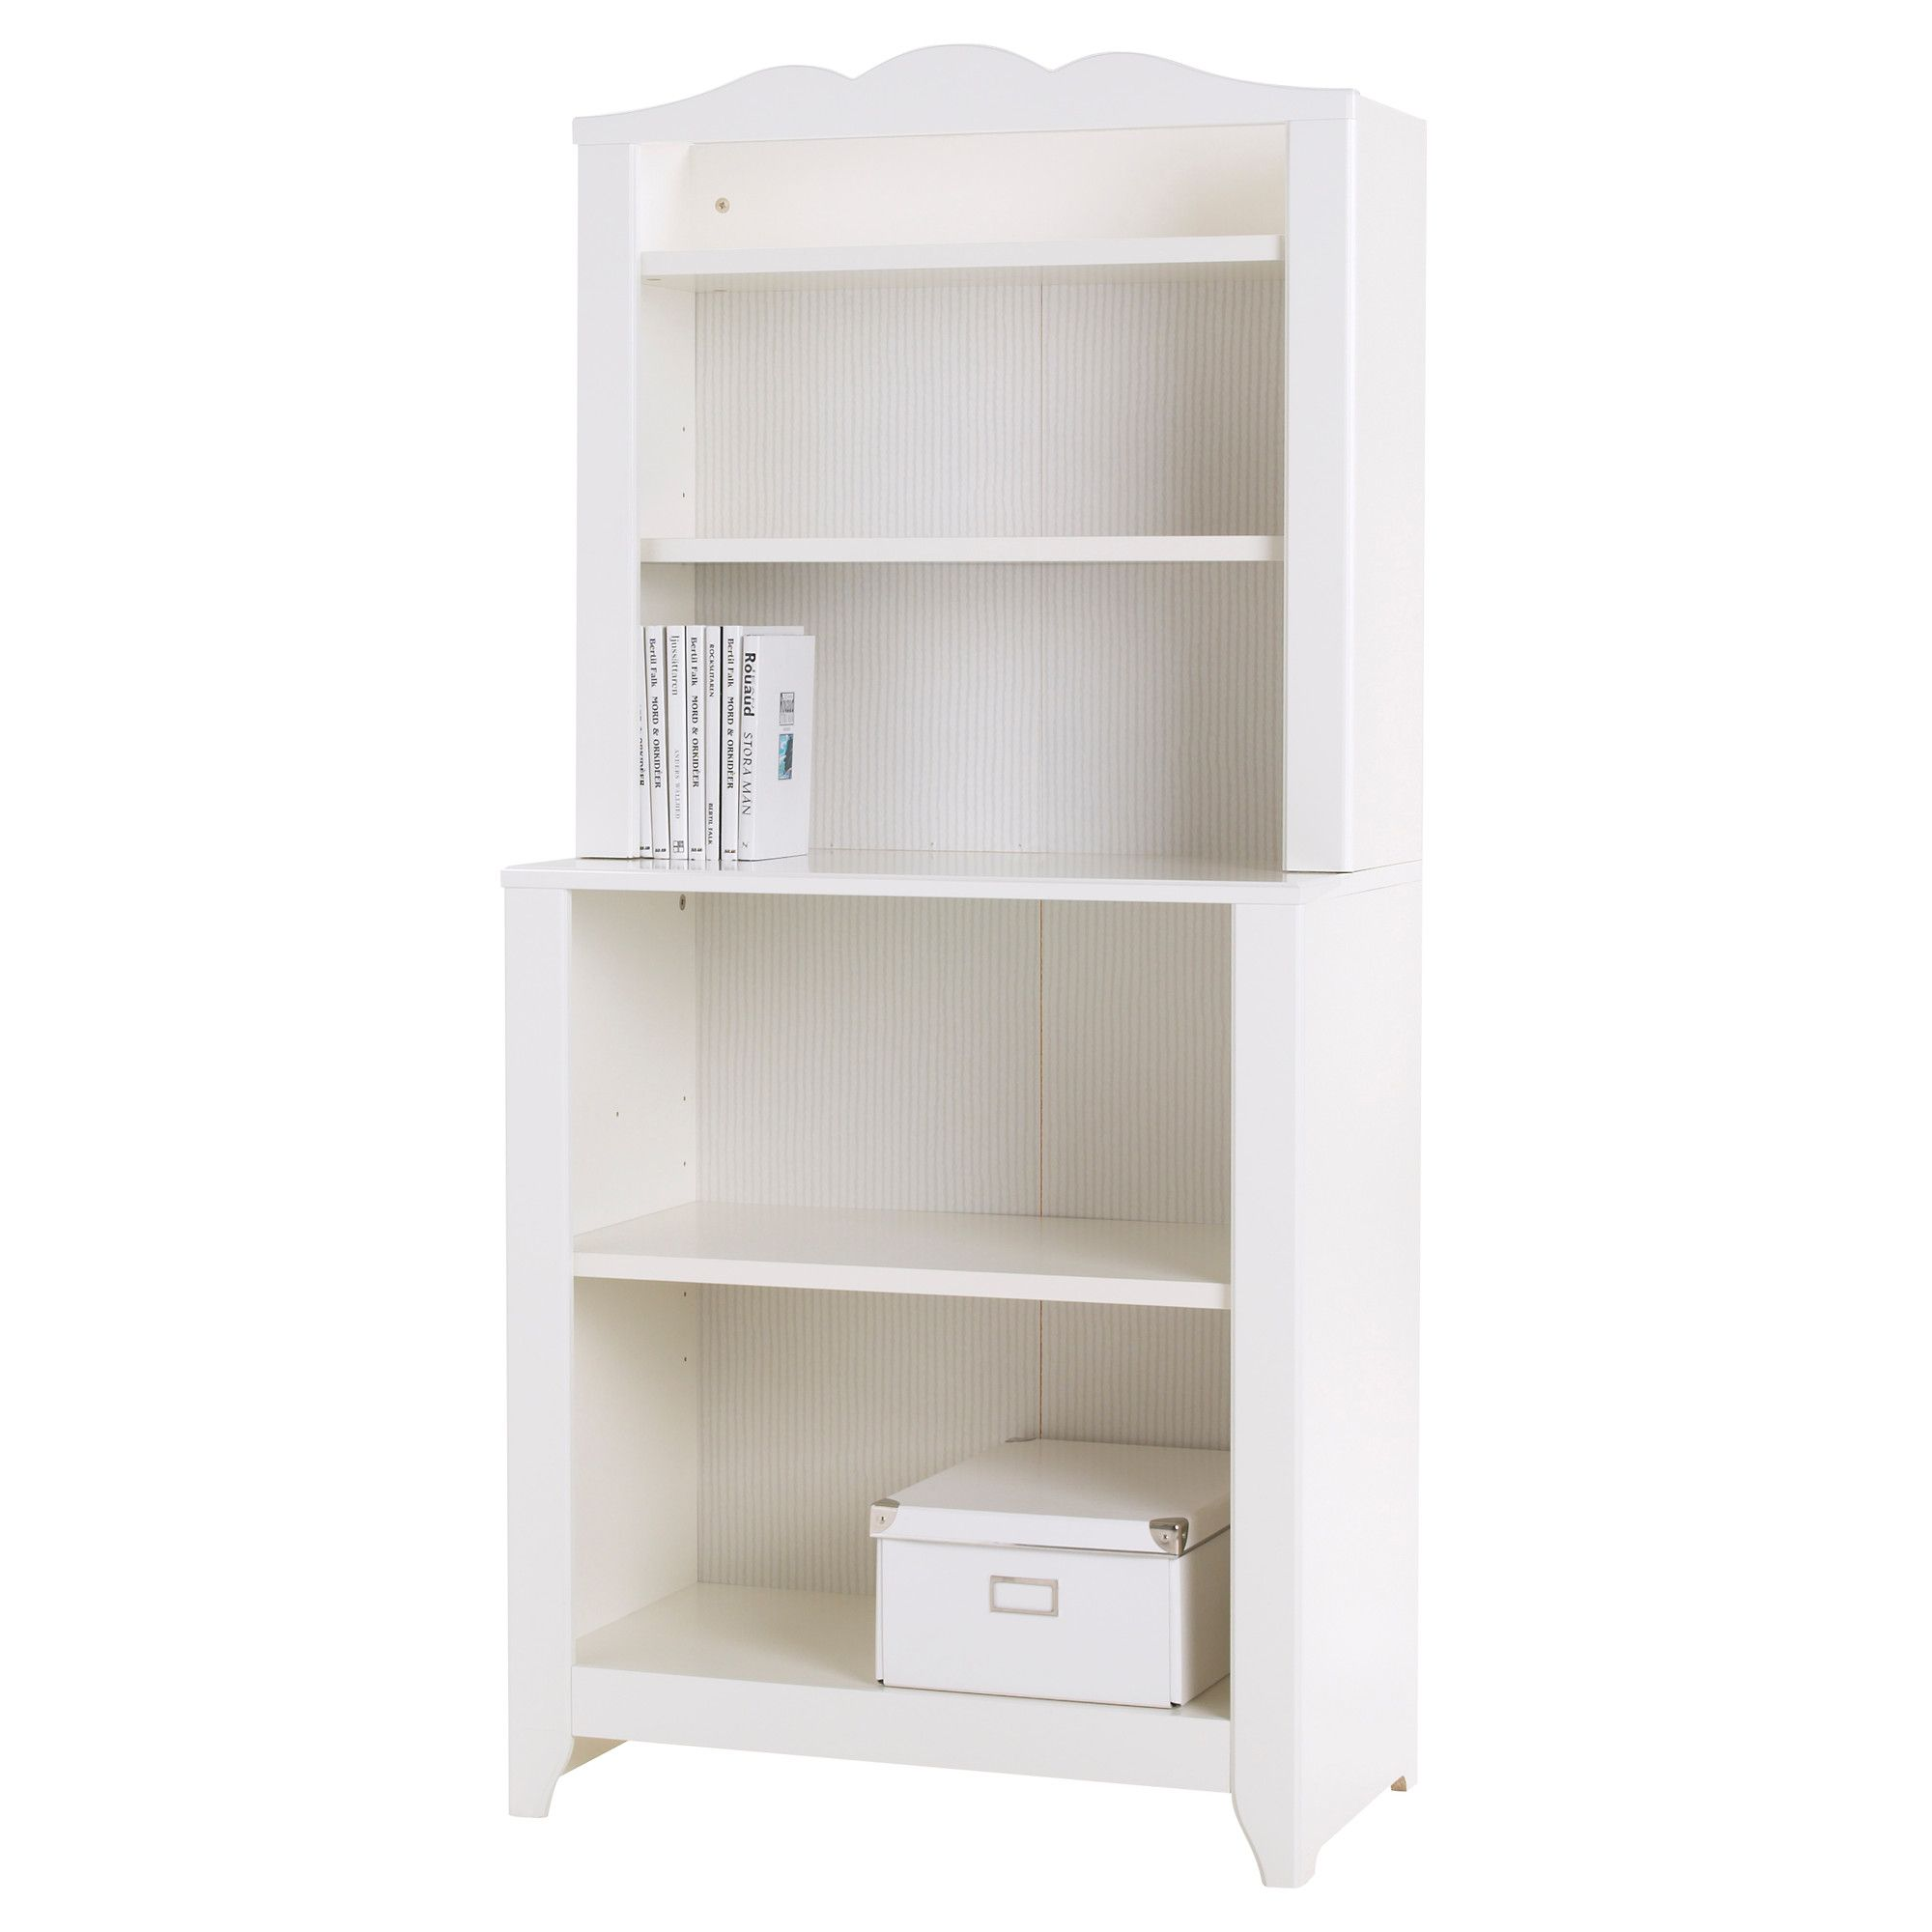 underneath storage twin canwood alluring trundle loft dhp madison pawsitively white skyway girls ideas room stunning bookcase bedroom kids and junior castle steps desk yours pink princess boys tower corliving with